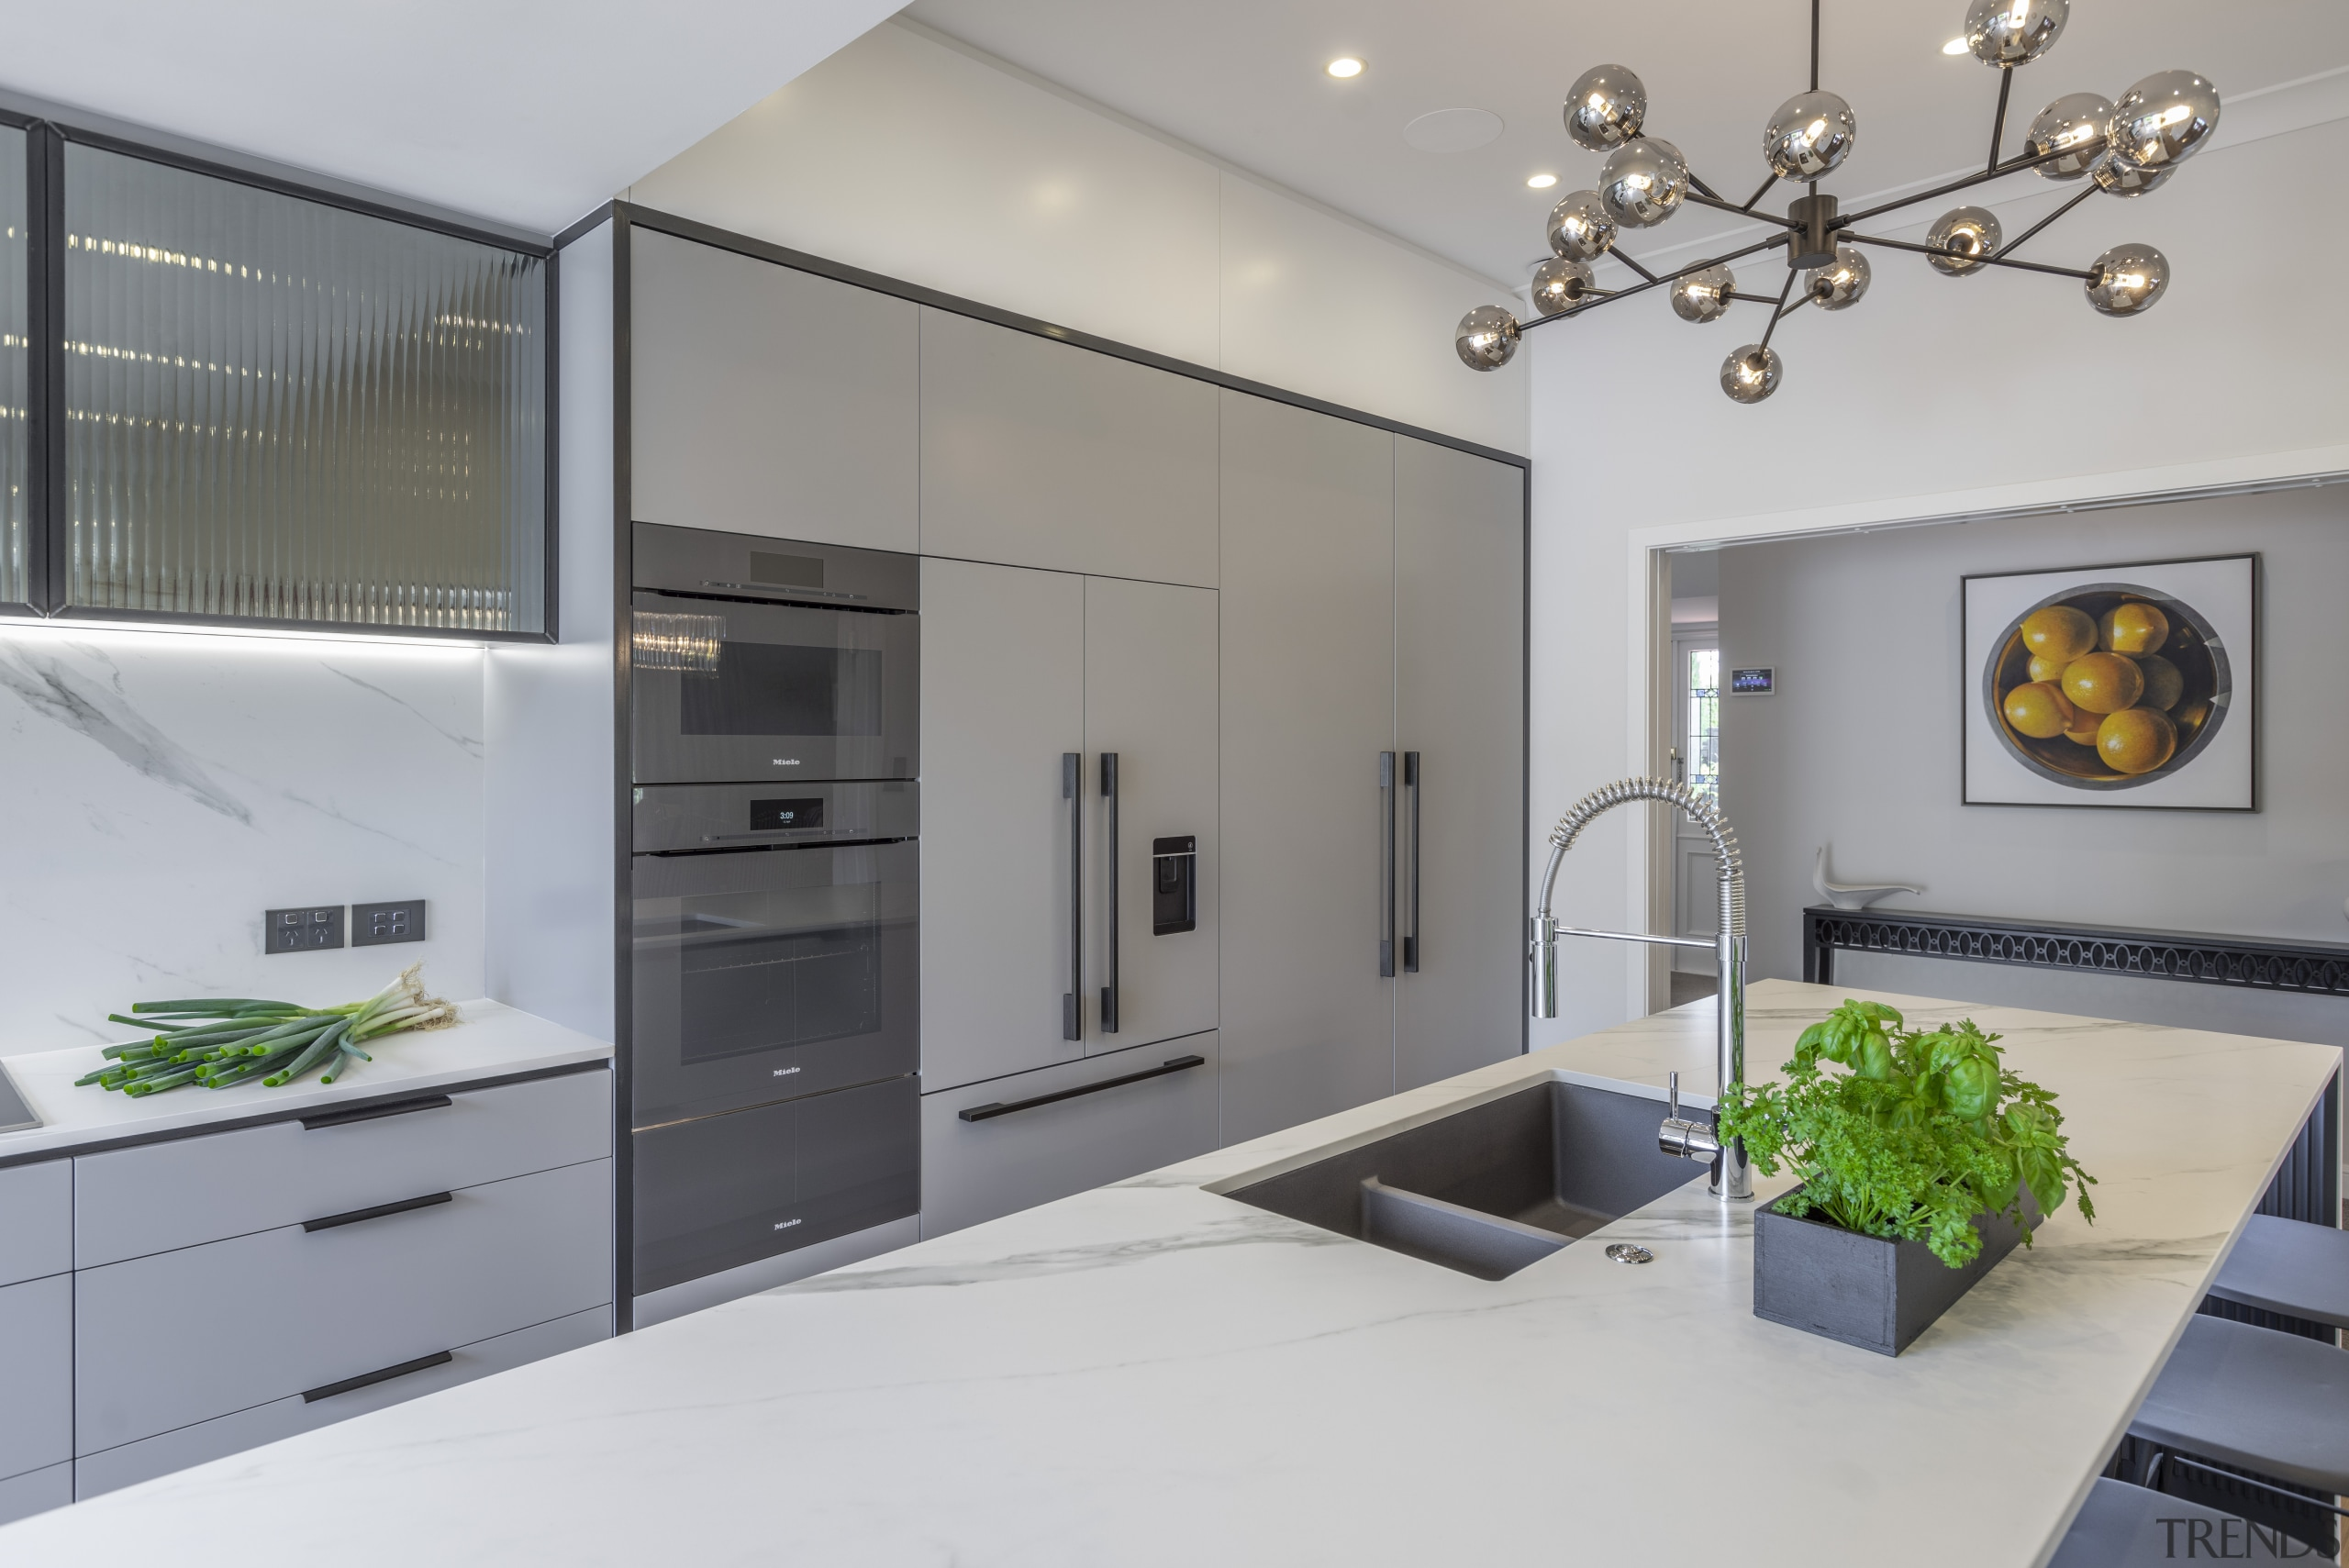 The soft lines and colour of the Dekton